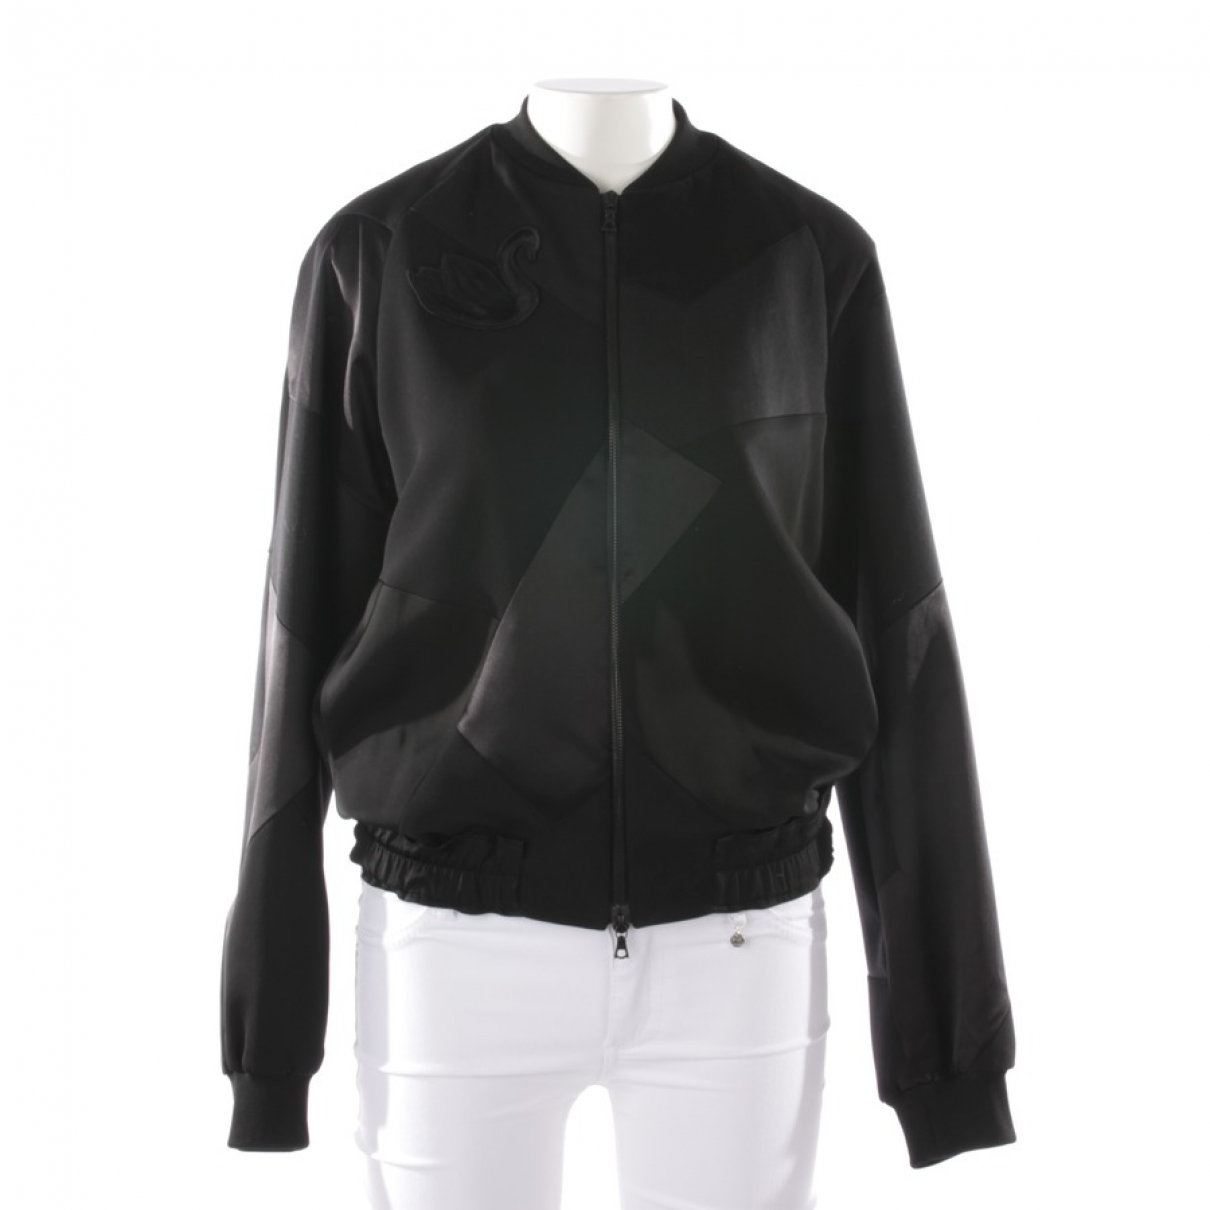 Victoria Beckham \N Black Wool jacket for Women 34 FR